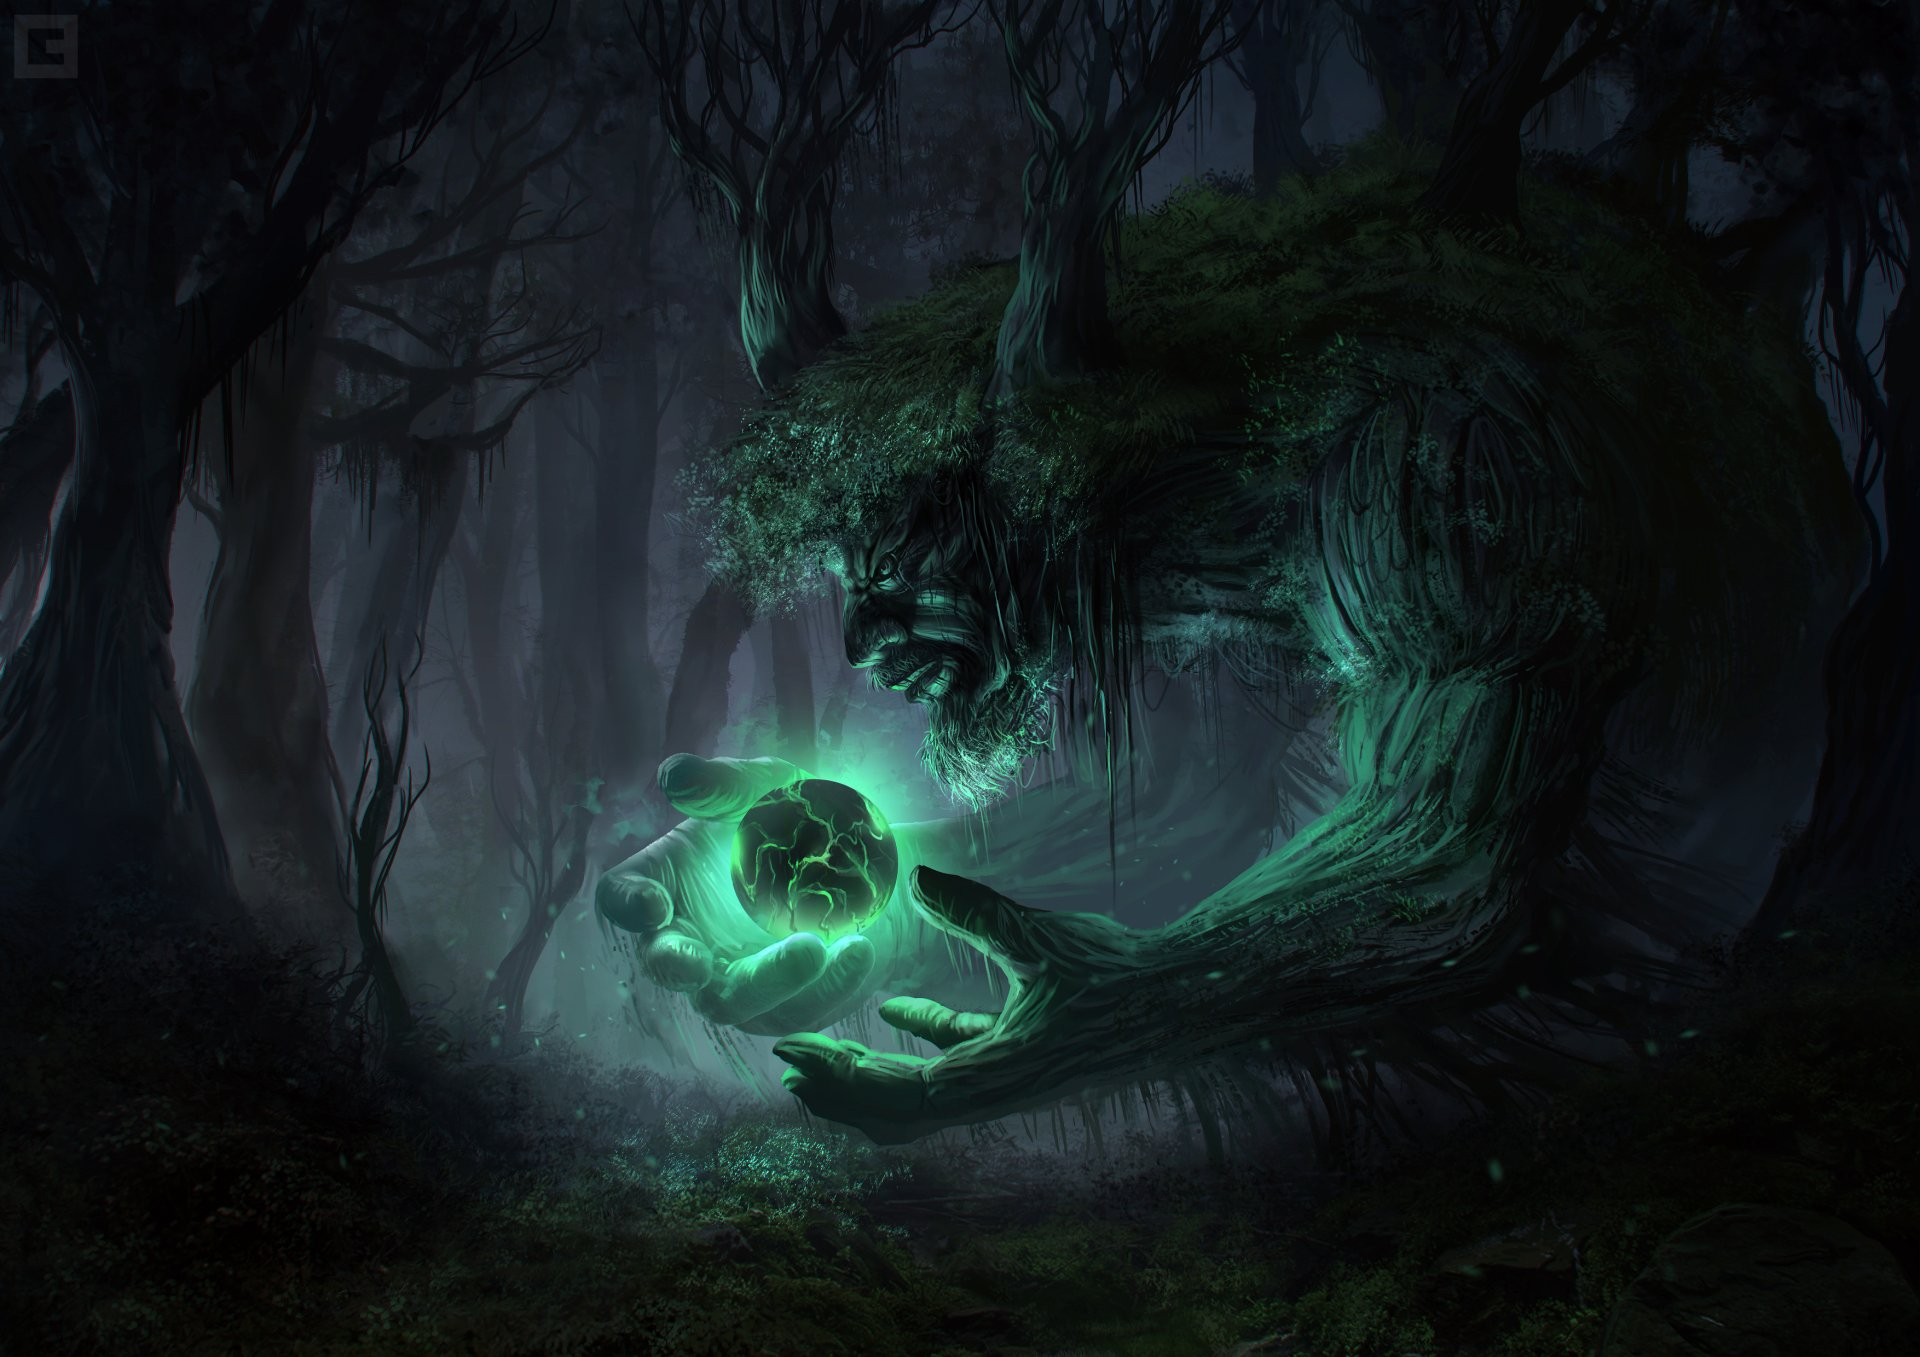 Fantasy - Creature  Dark Forest Green Fantasy Magic Giant Ogre Wallpaper